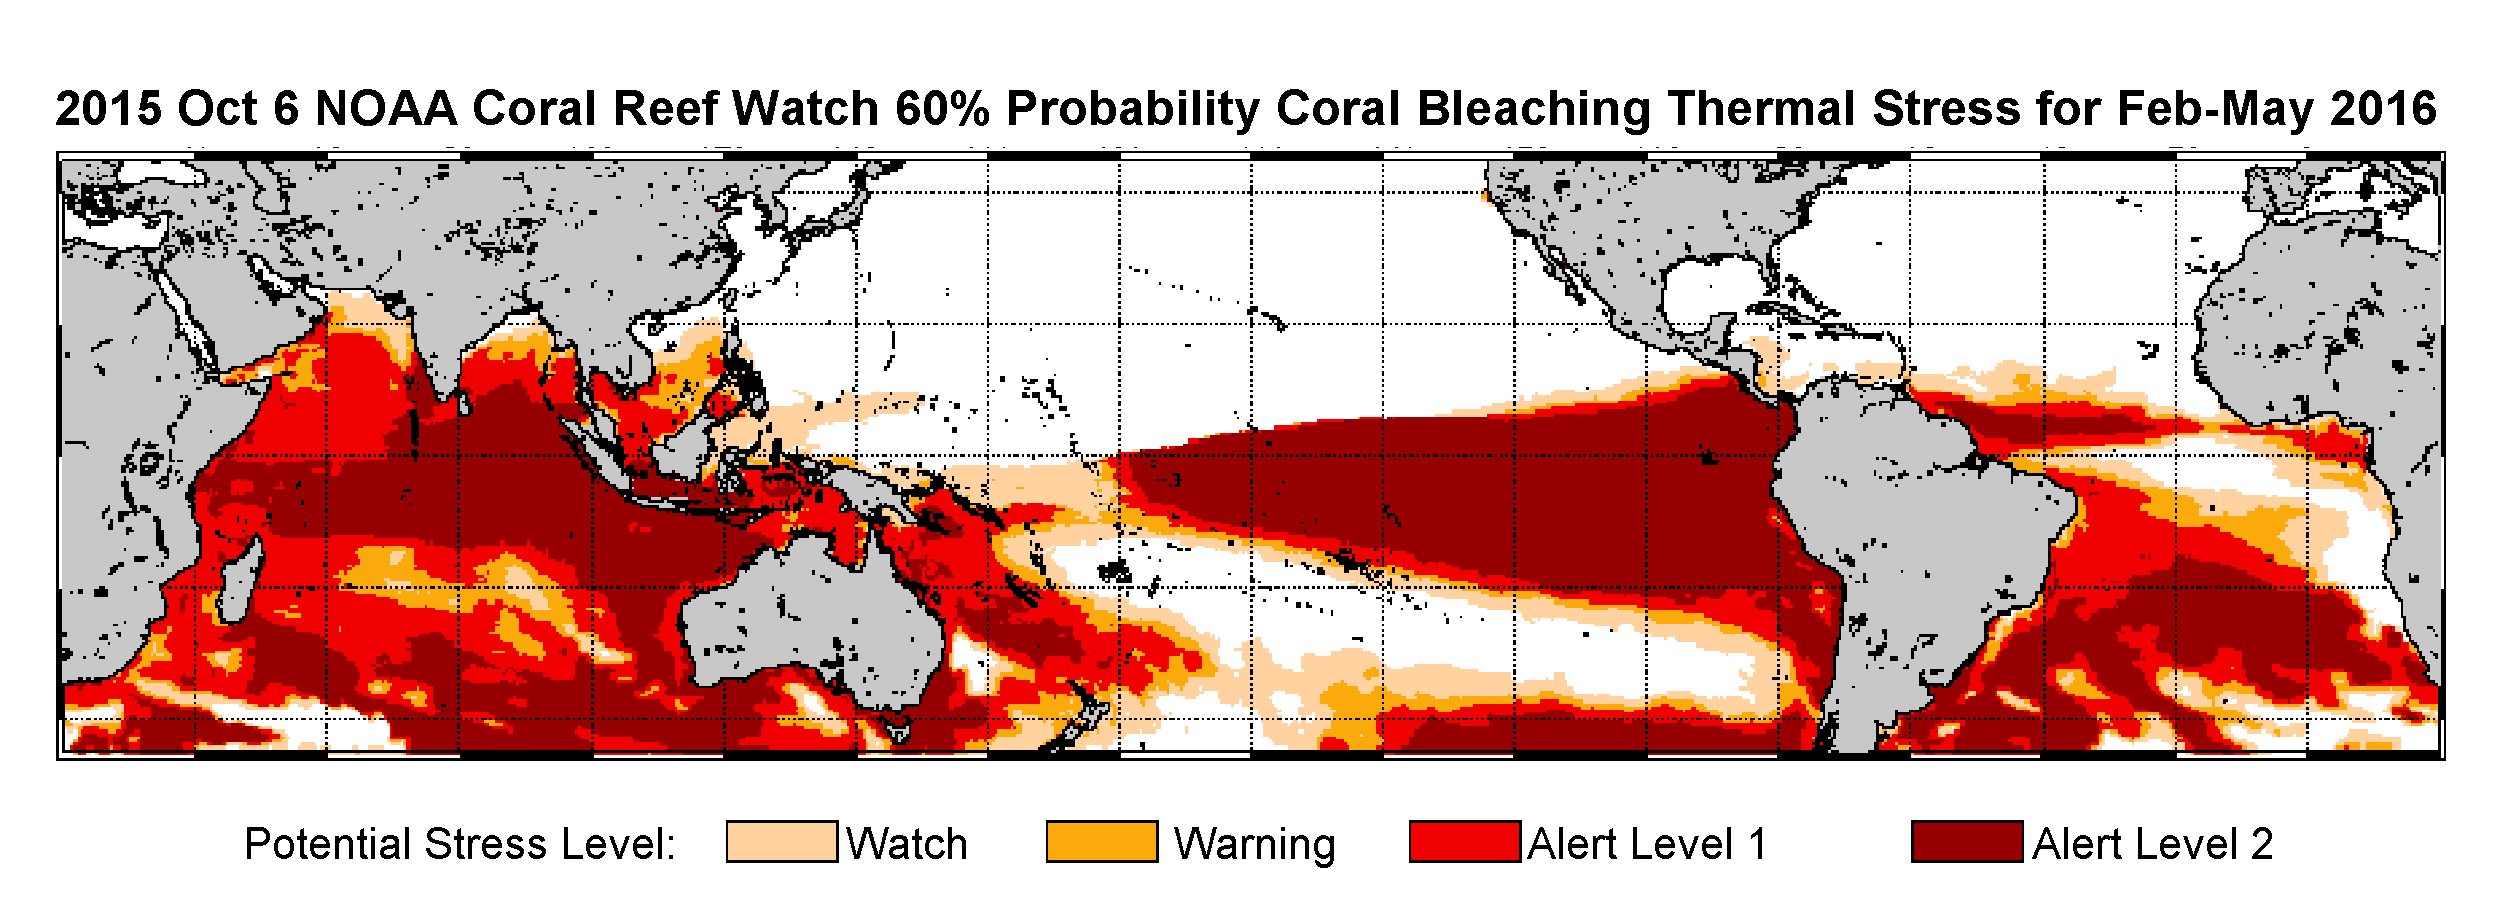 images/noaa_coral_reef_watch_2